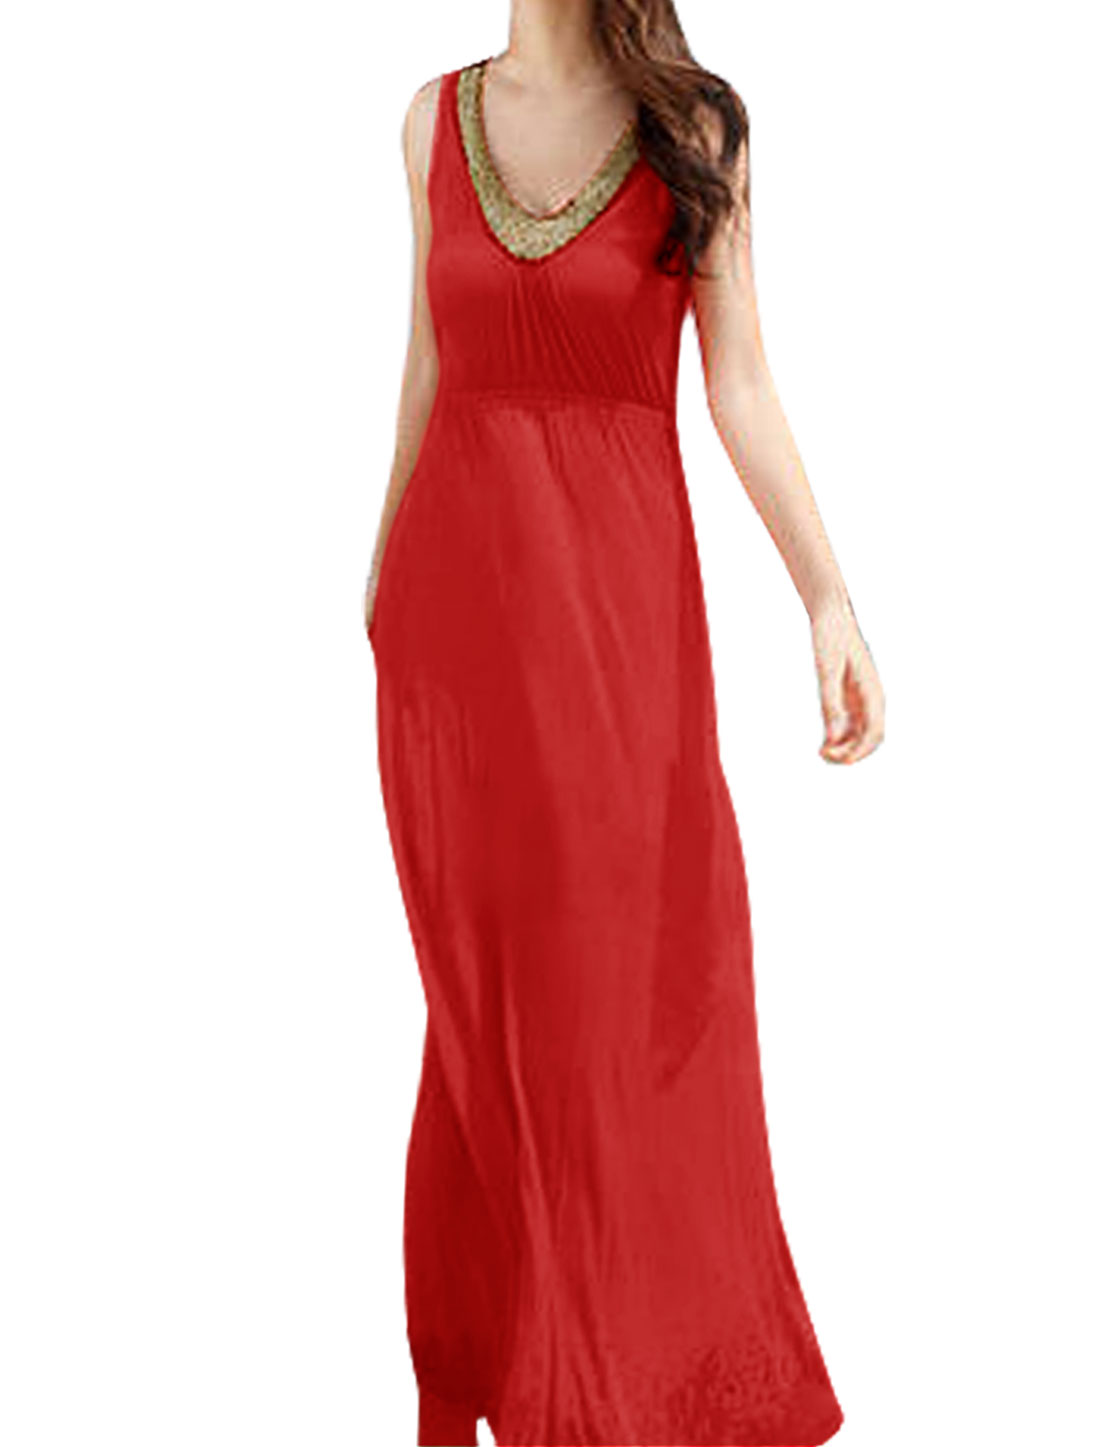 Women Chic V Neck Beaded Trimed Sleeveless Pullover Red Maxi Dress XS